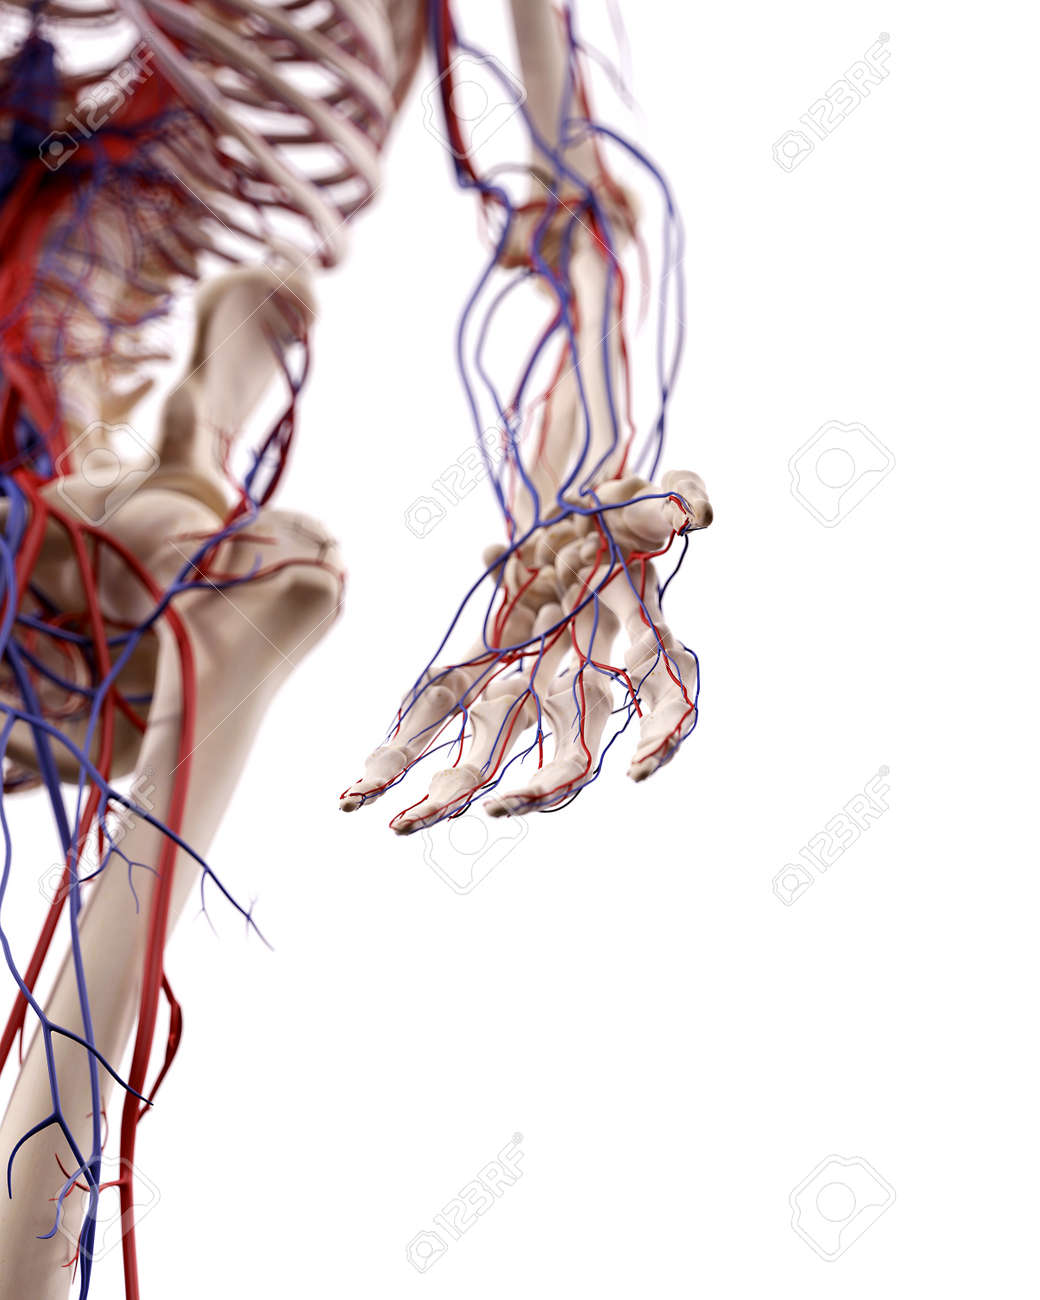 Medical Accurate Illustration Of The Hand Blood Vessels Stock Photo ...